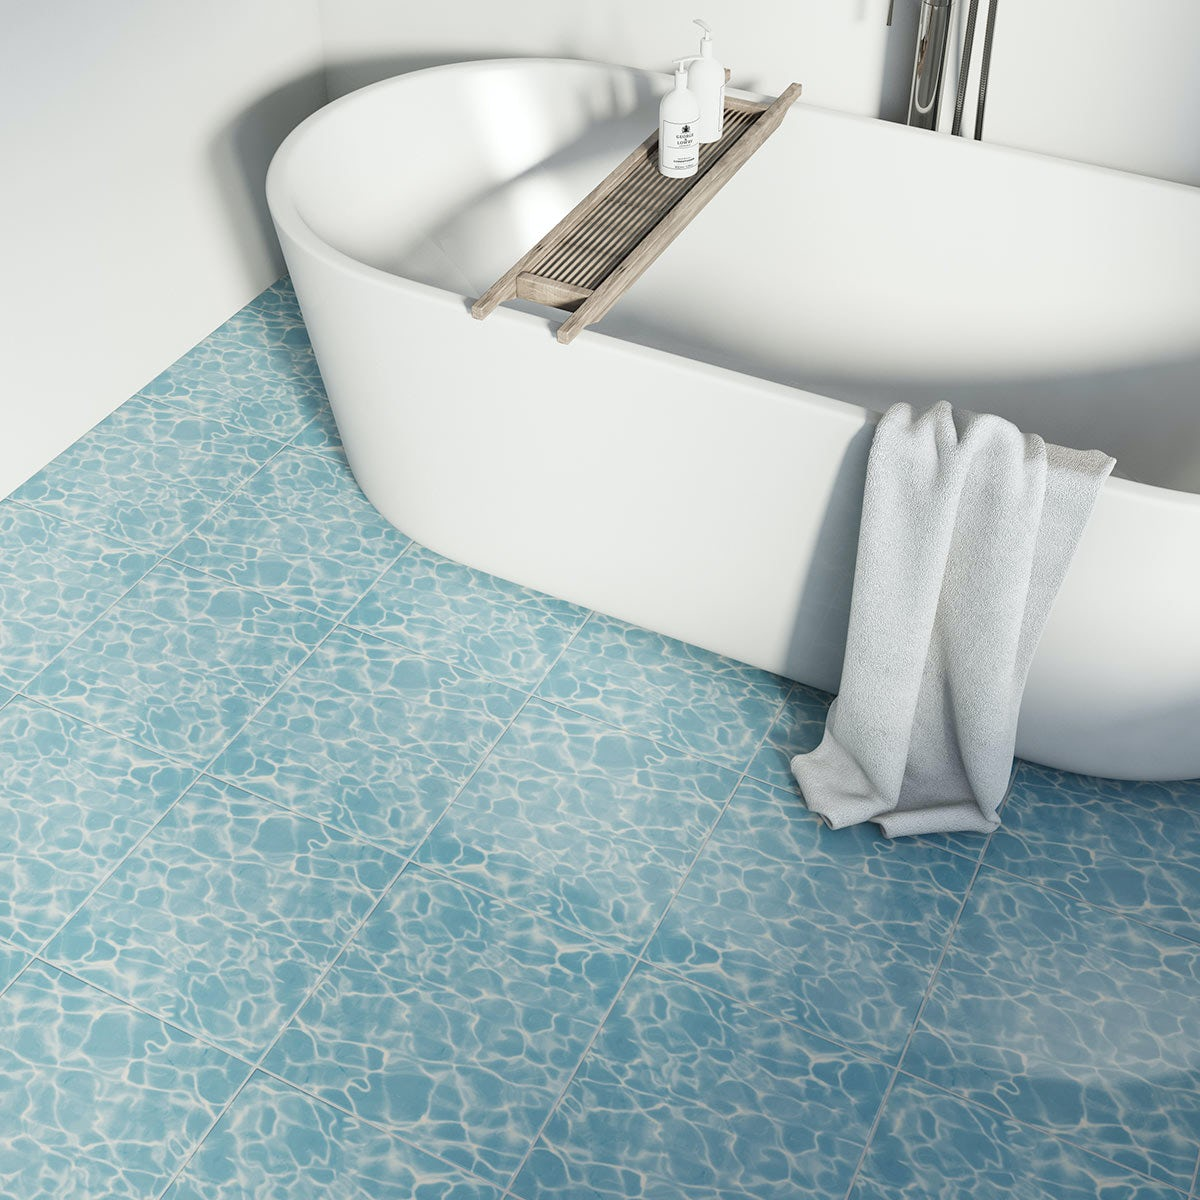 bath on a floor tiled with water effect tiles